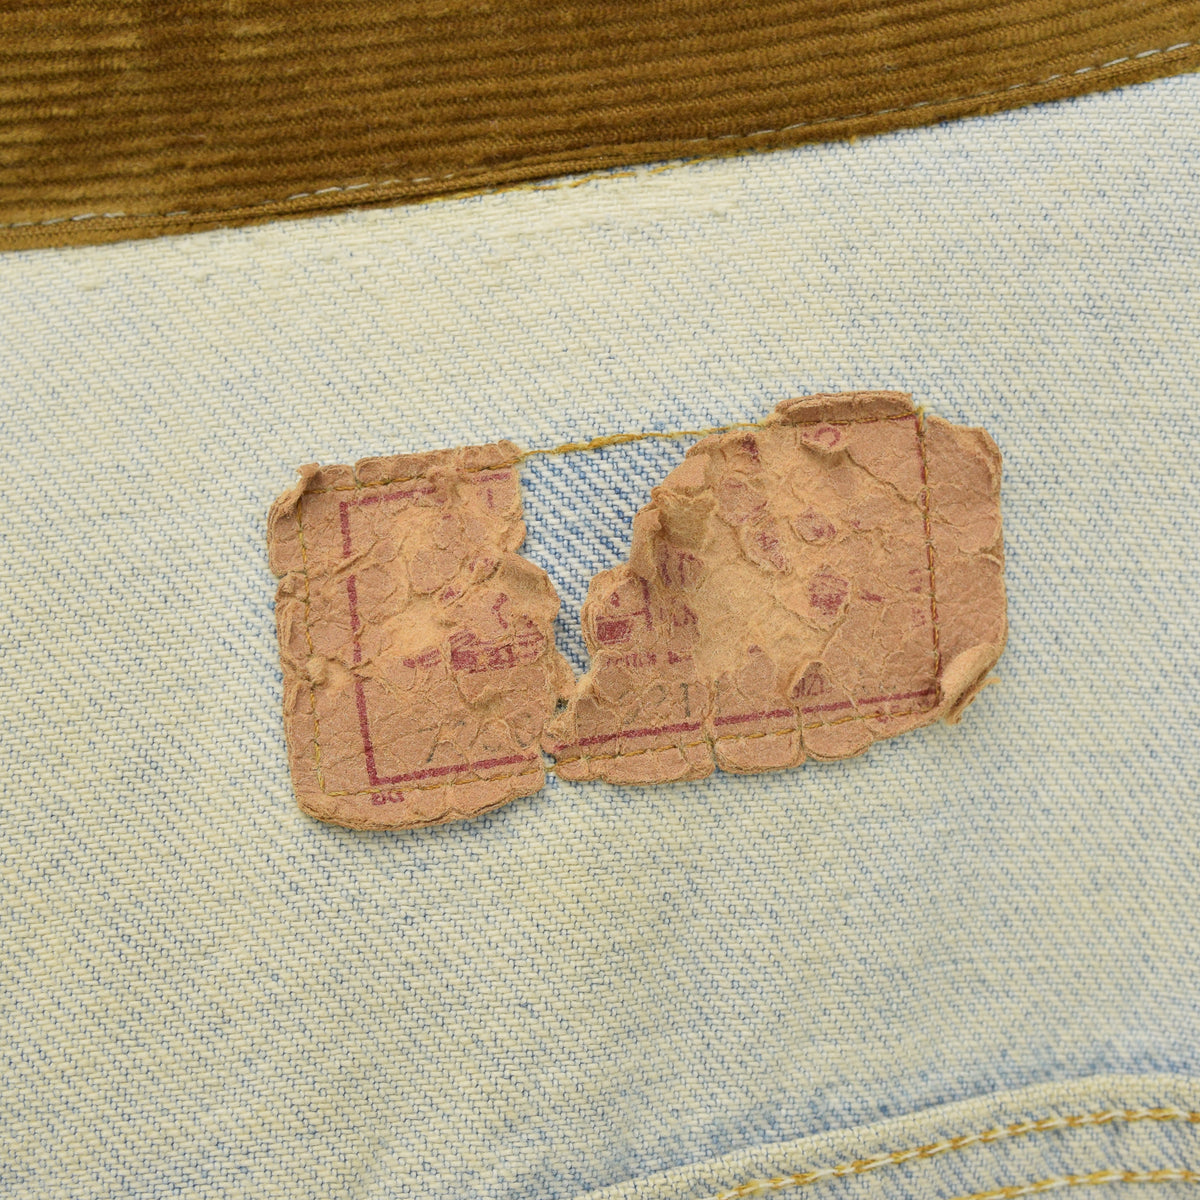 Vintage Levi Red Tab Stonewash Blue Type 3 Denim Trucker Jacket Made in USA L label